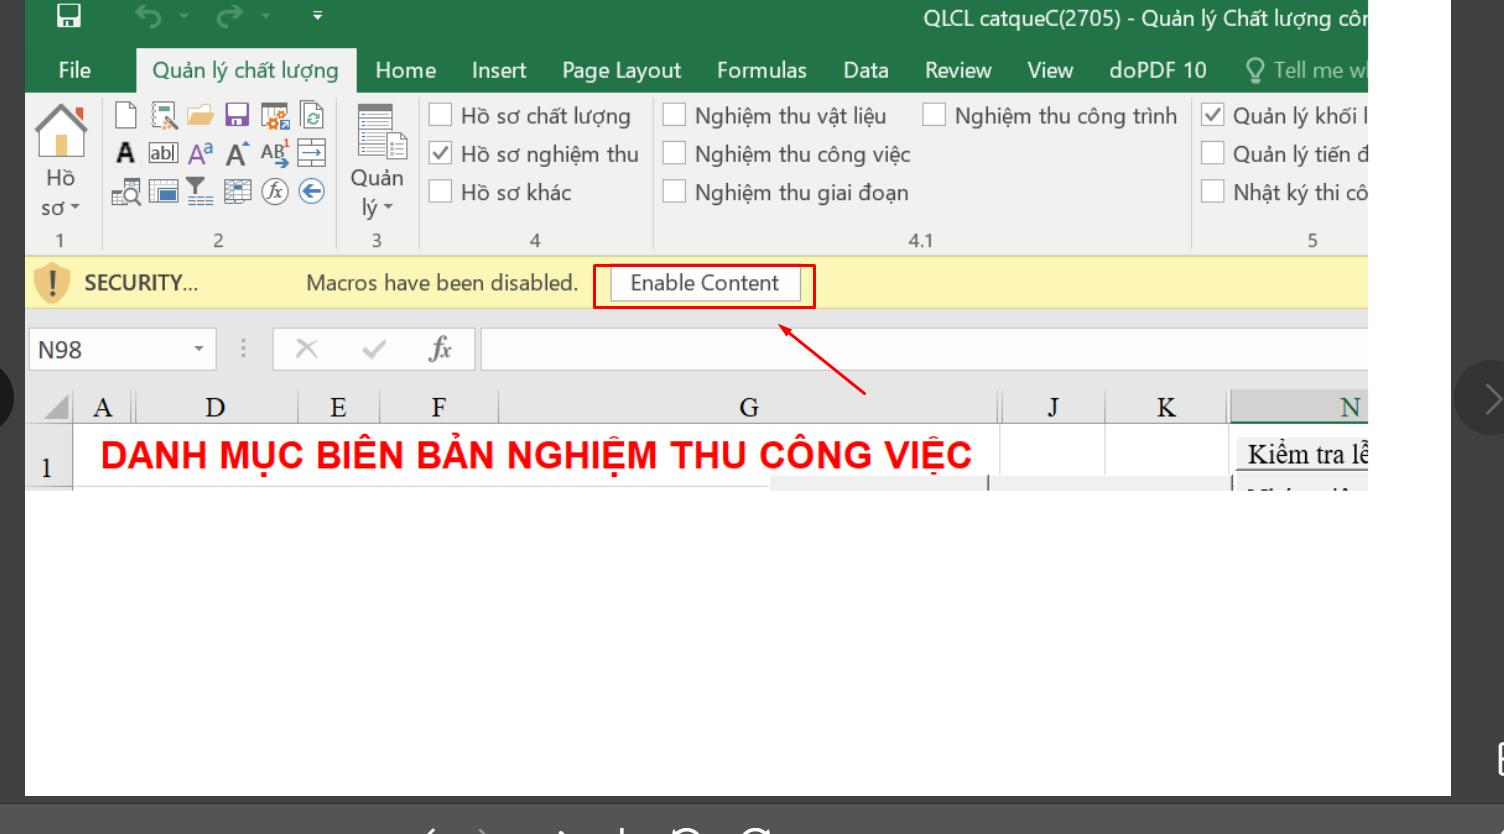 canh-bao-macro-security-enable-content.jpg